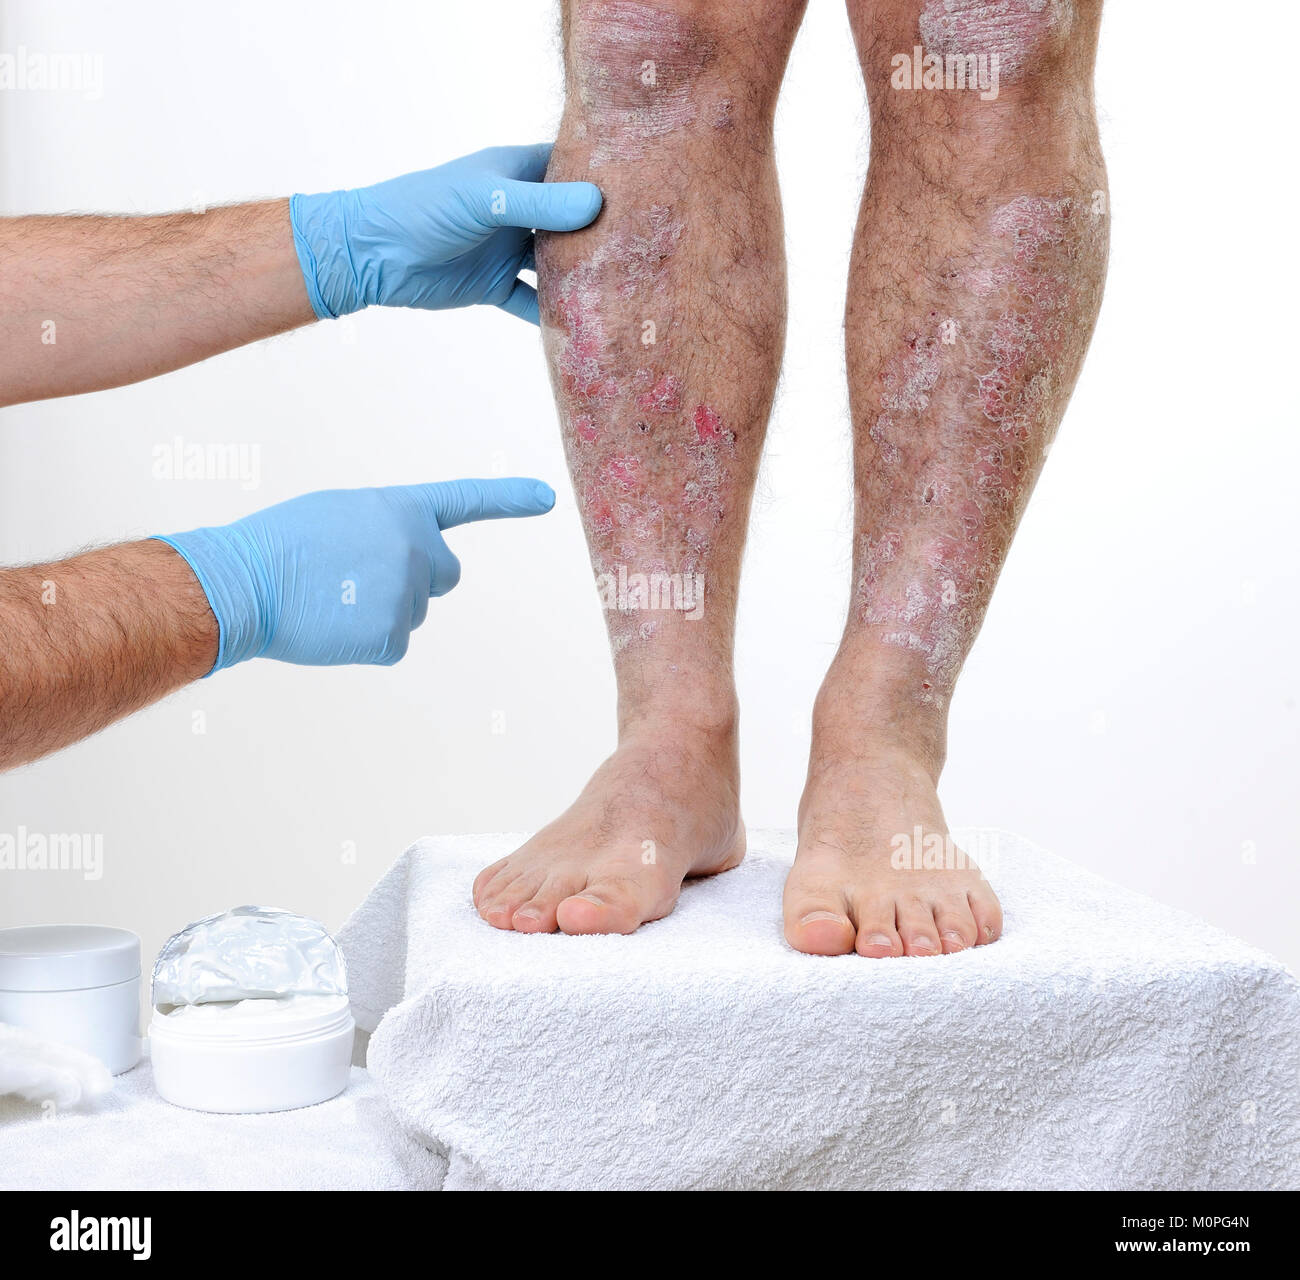 The dermatologist with his hands protected by gloves studies the inflammation in the legs of an adult man with psoriasis - Stock Image